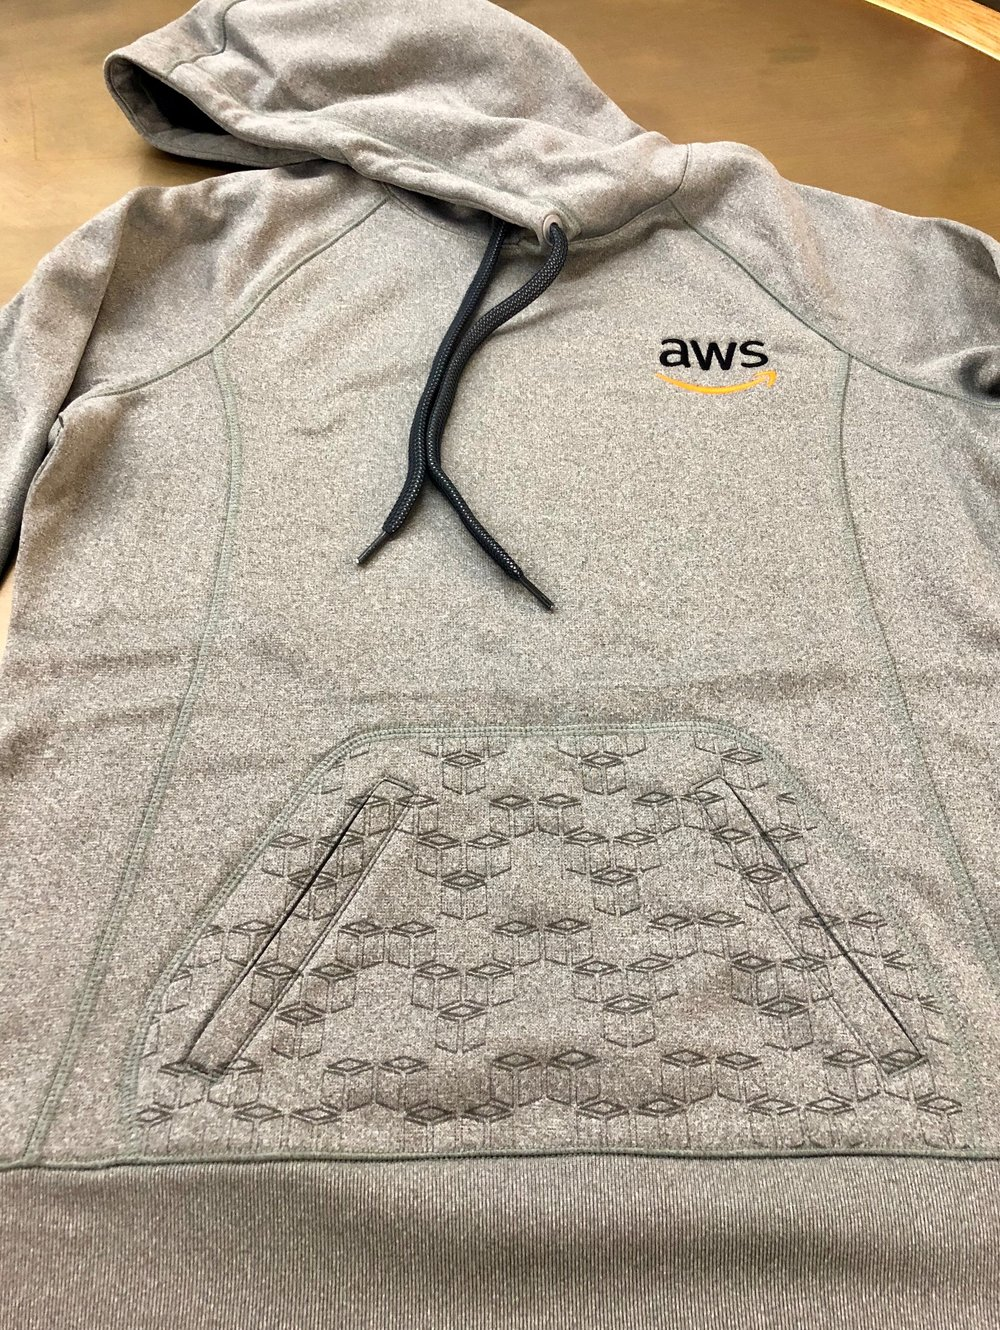 logounltd_laser_etching_embroidery_screen_printing_apparel_uniform_custom_tshirts_dye_sublimation_kirkland_bellevue_seattle_redmond_branded_merchandise_promotional_products_logo_unltd_amazon_aws (13).jpg